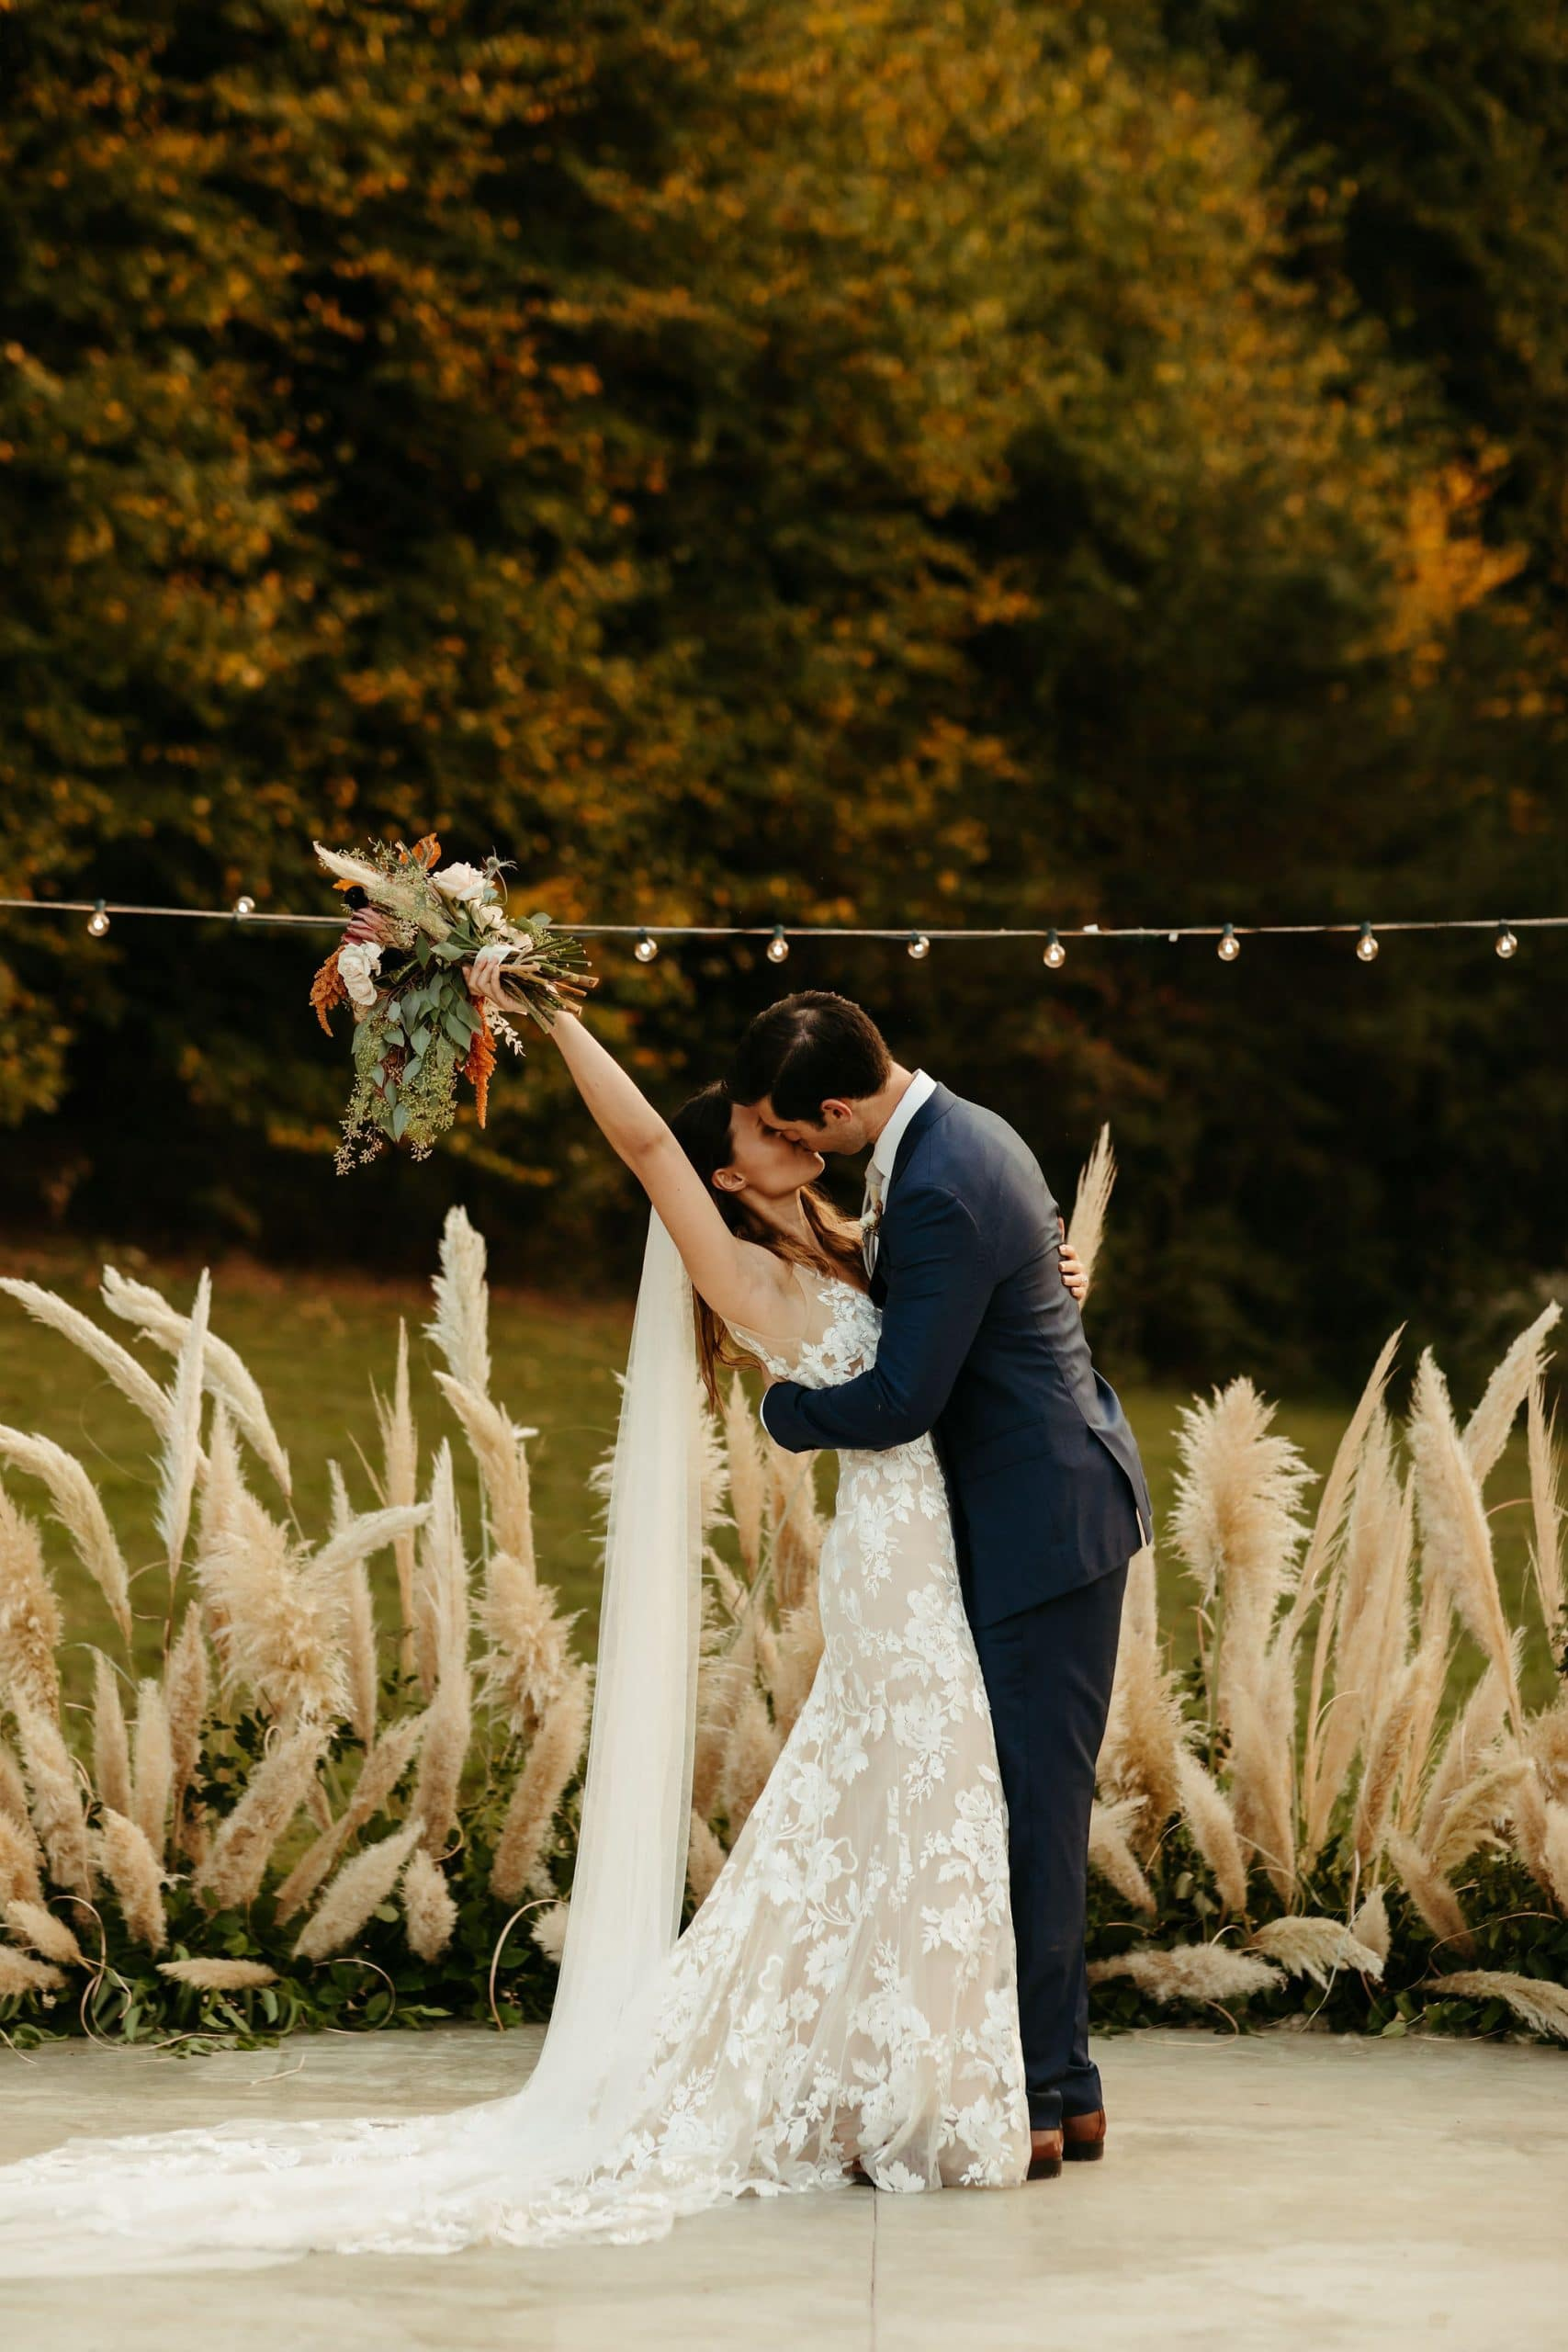 Annabelle+Paul+Under+Canvas+Smoky+Mountains-568